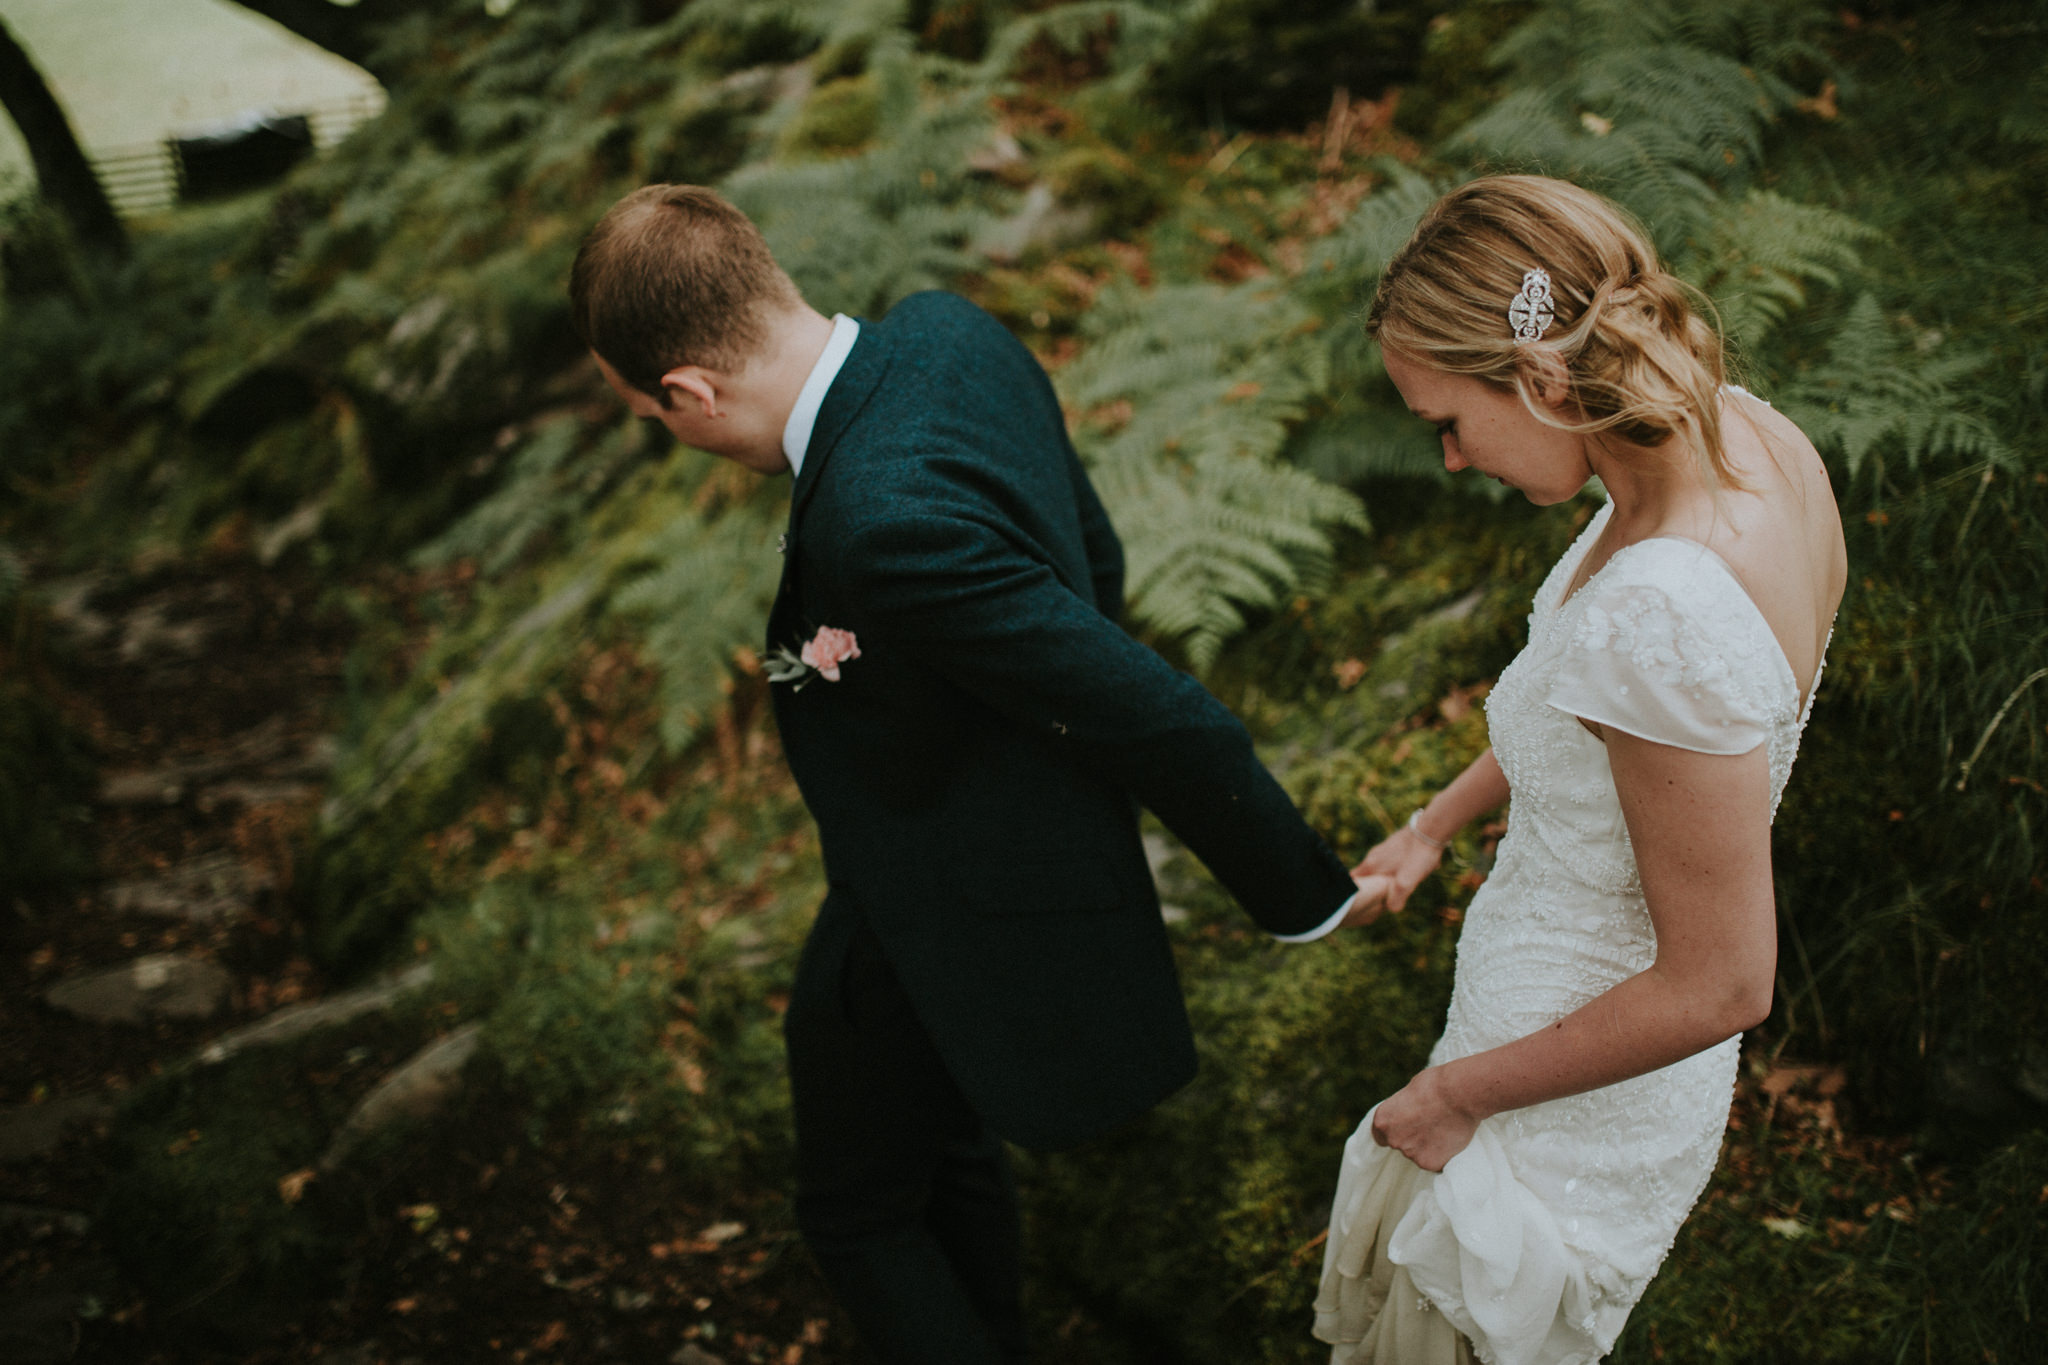 The wedding couple is walking down a hill in the forest.